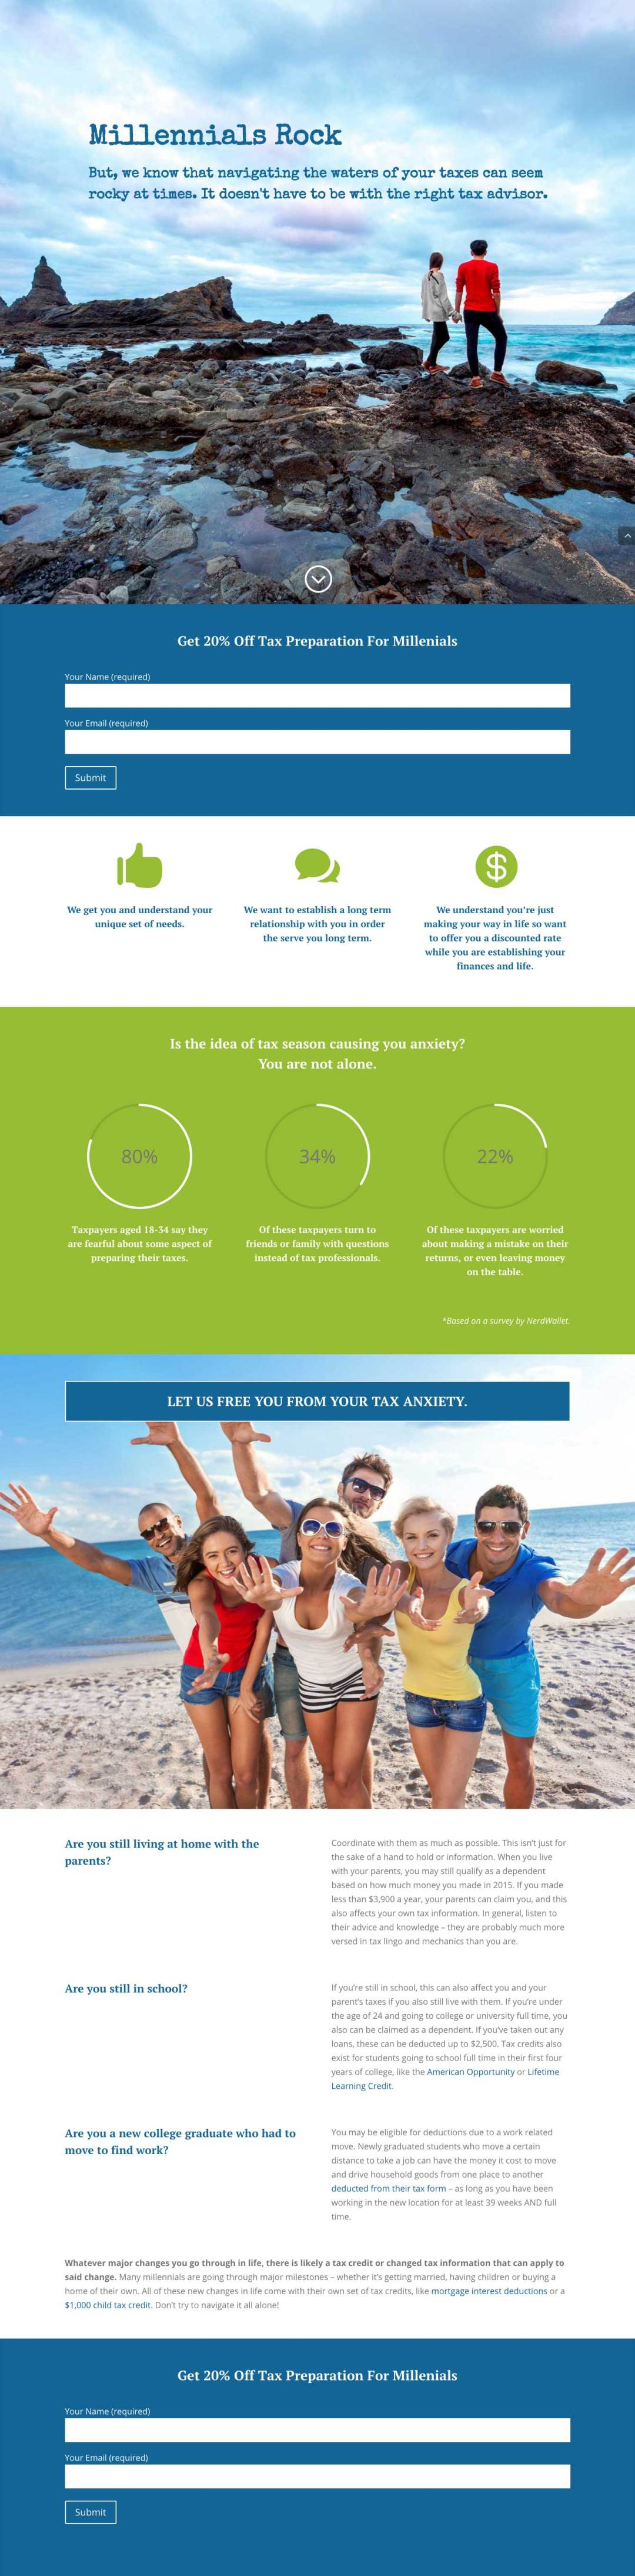 Millenials Rock Lead Page Design